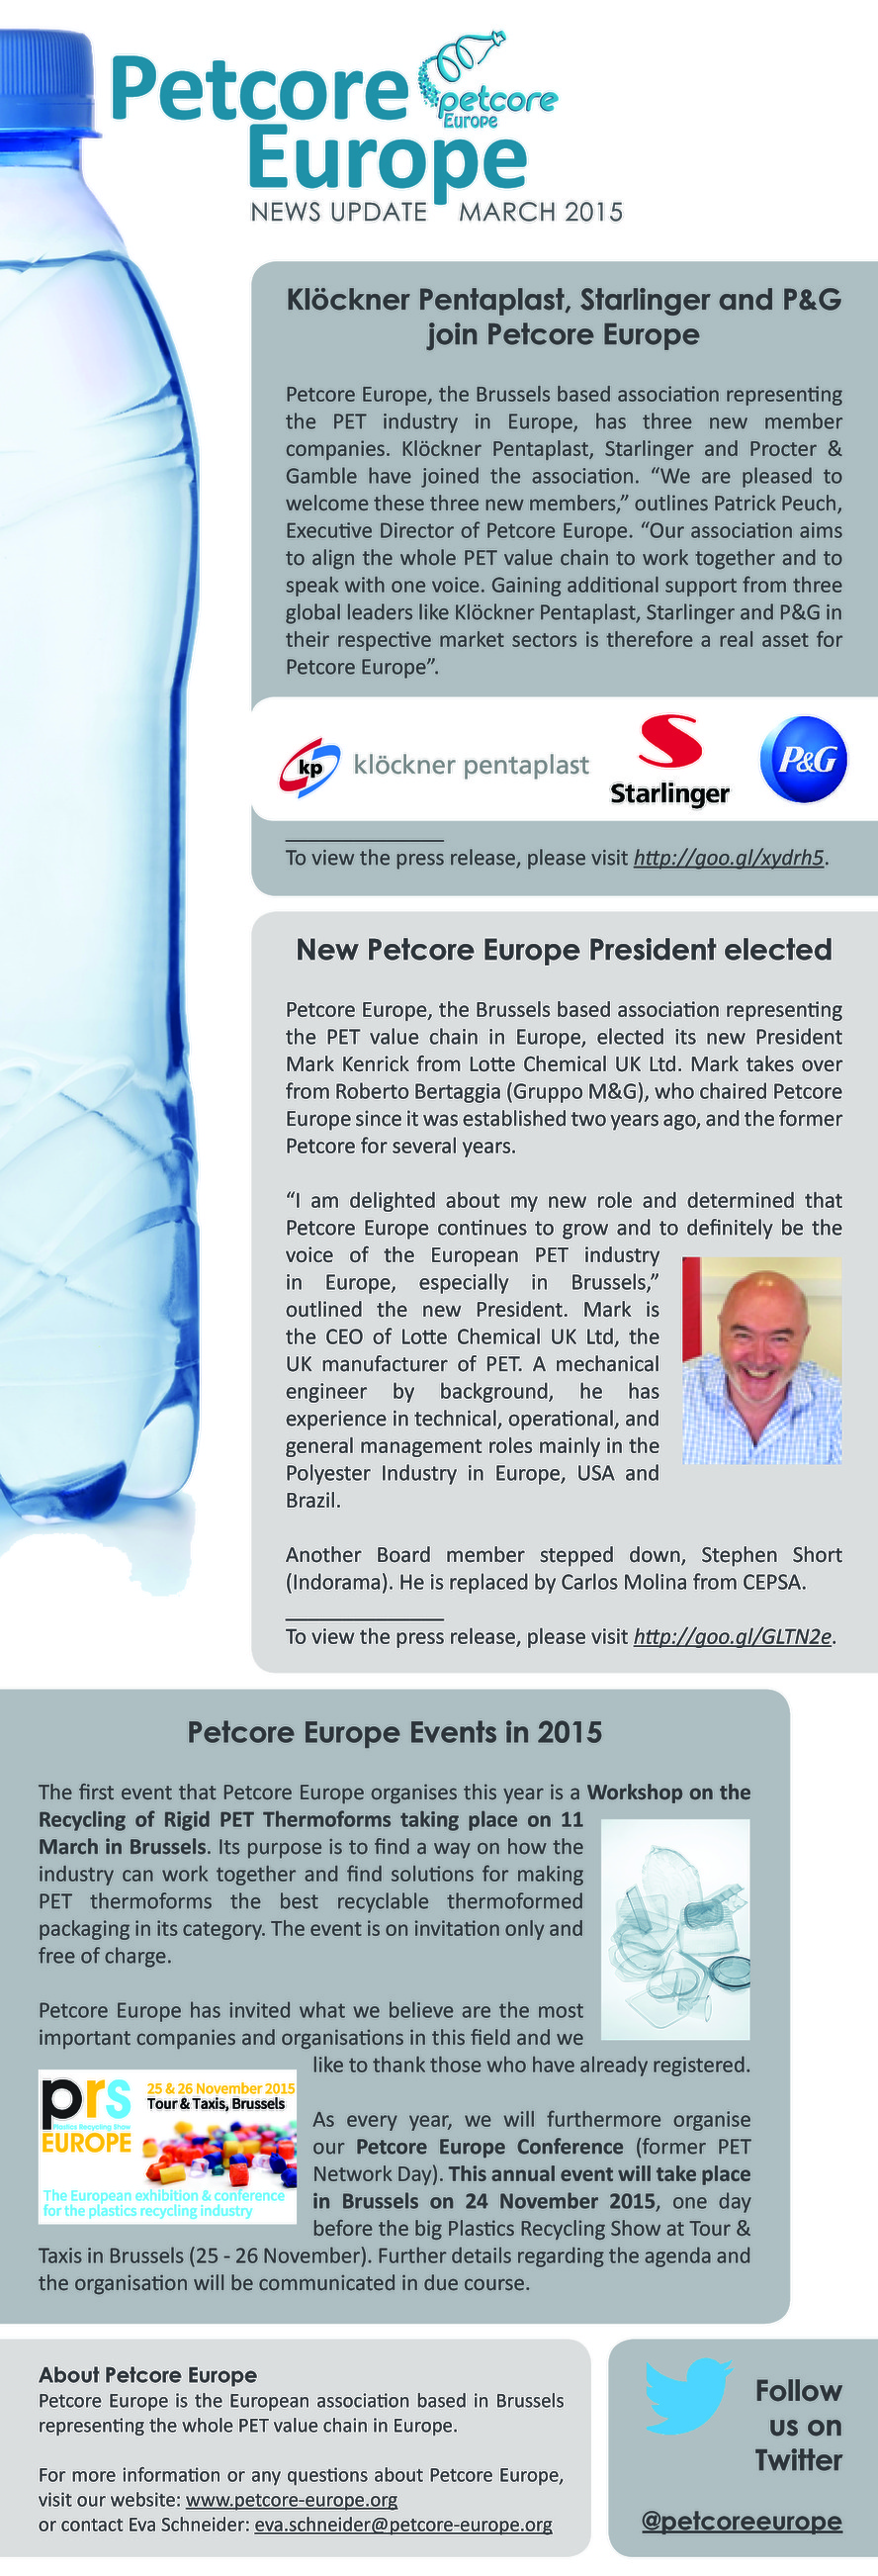 Petcore Europe News Update - March 2015